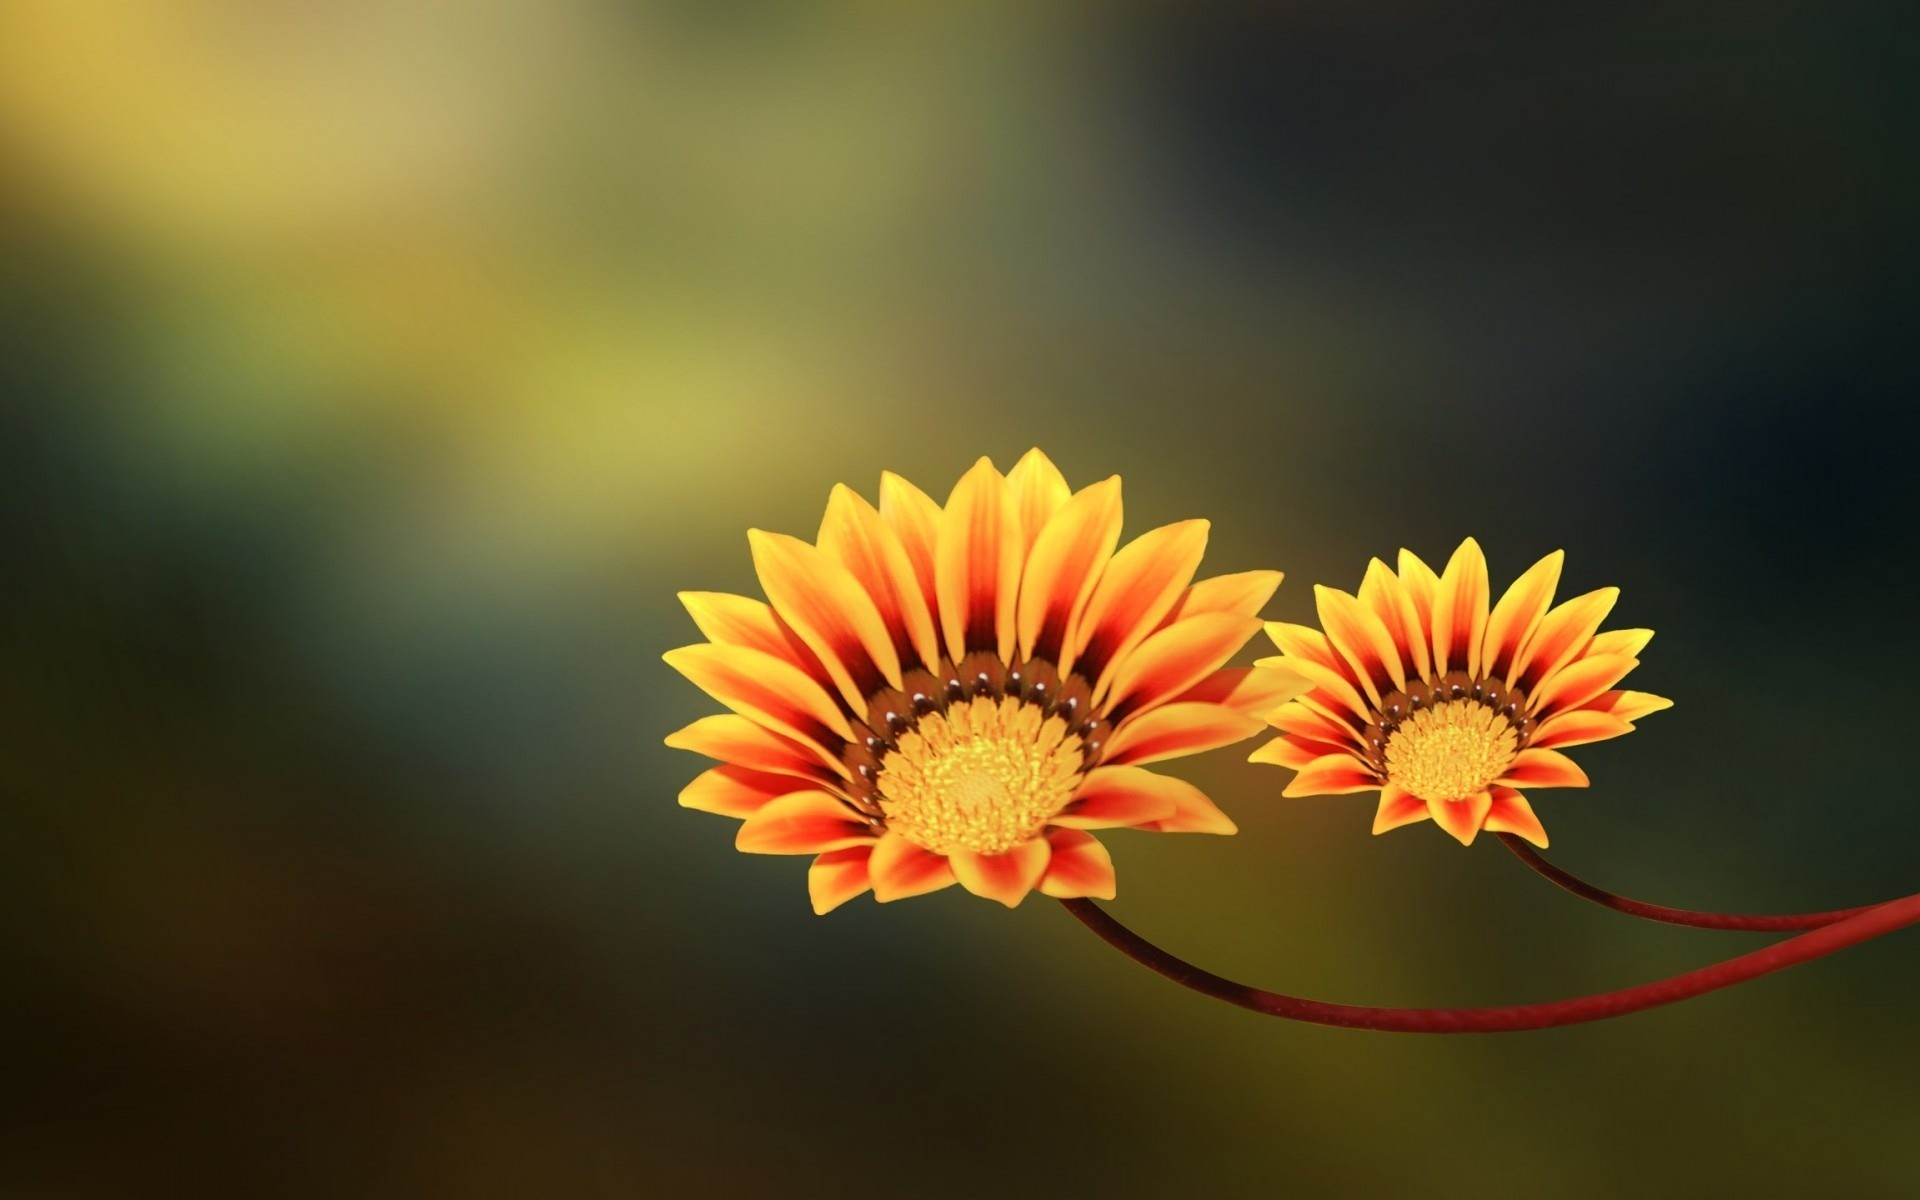 Macro flower wallpaper Pc